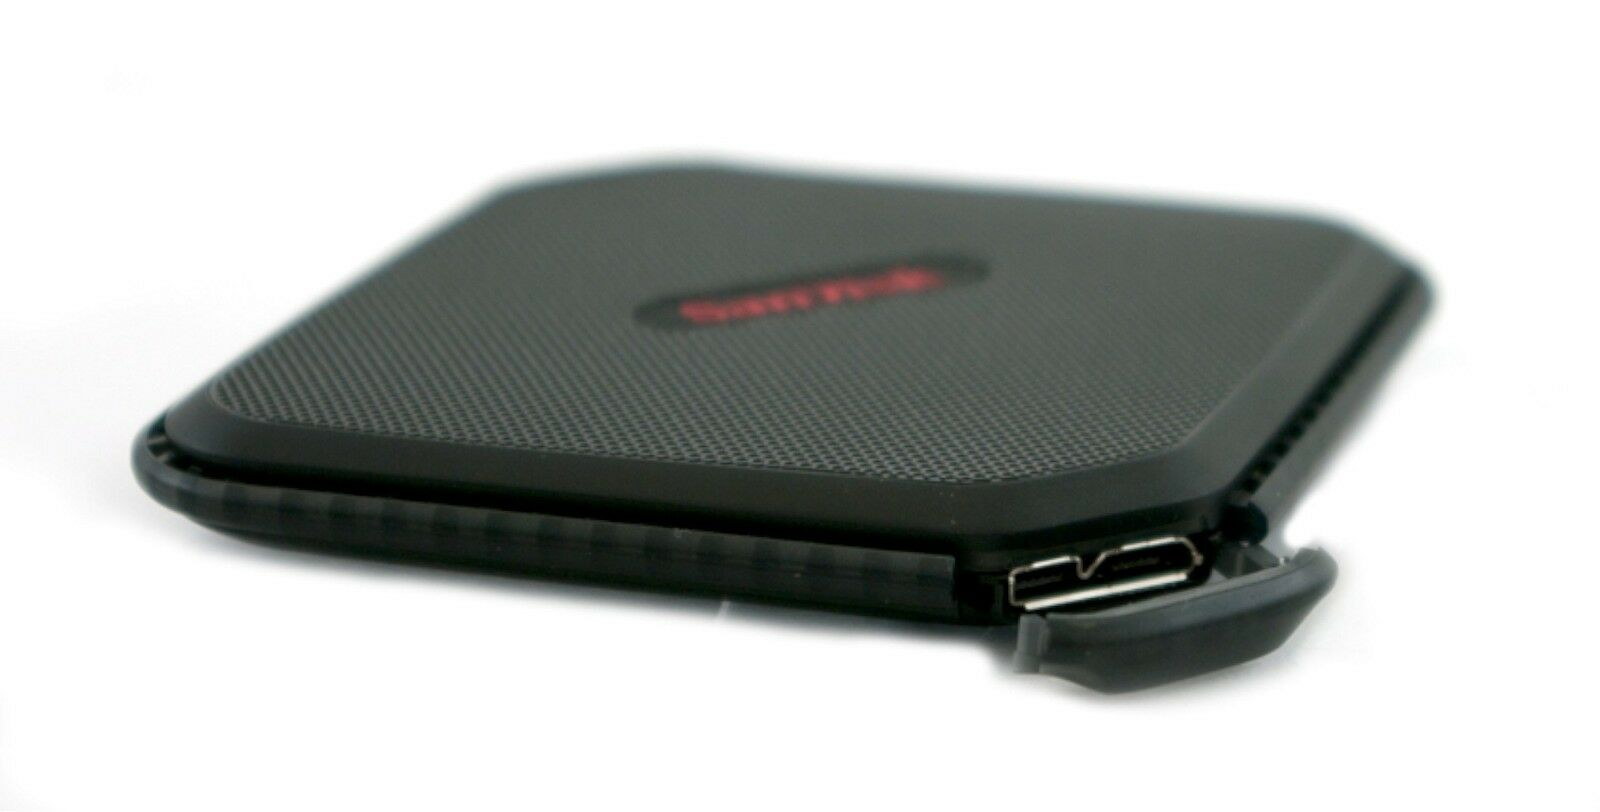 SanDisk Extreme 500 Portable 240GB Solid State Drive